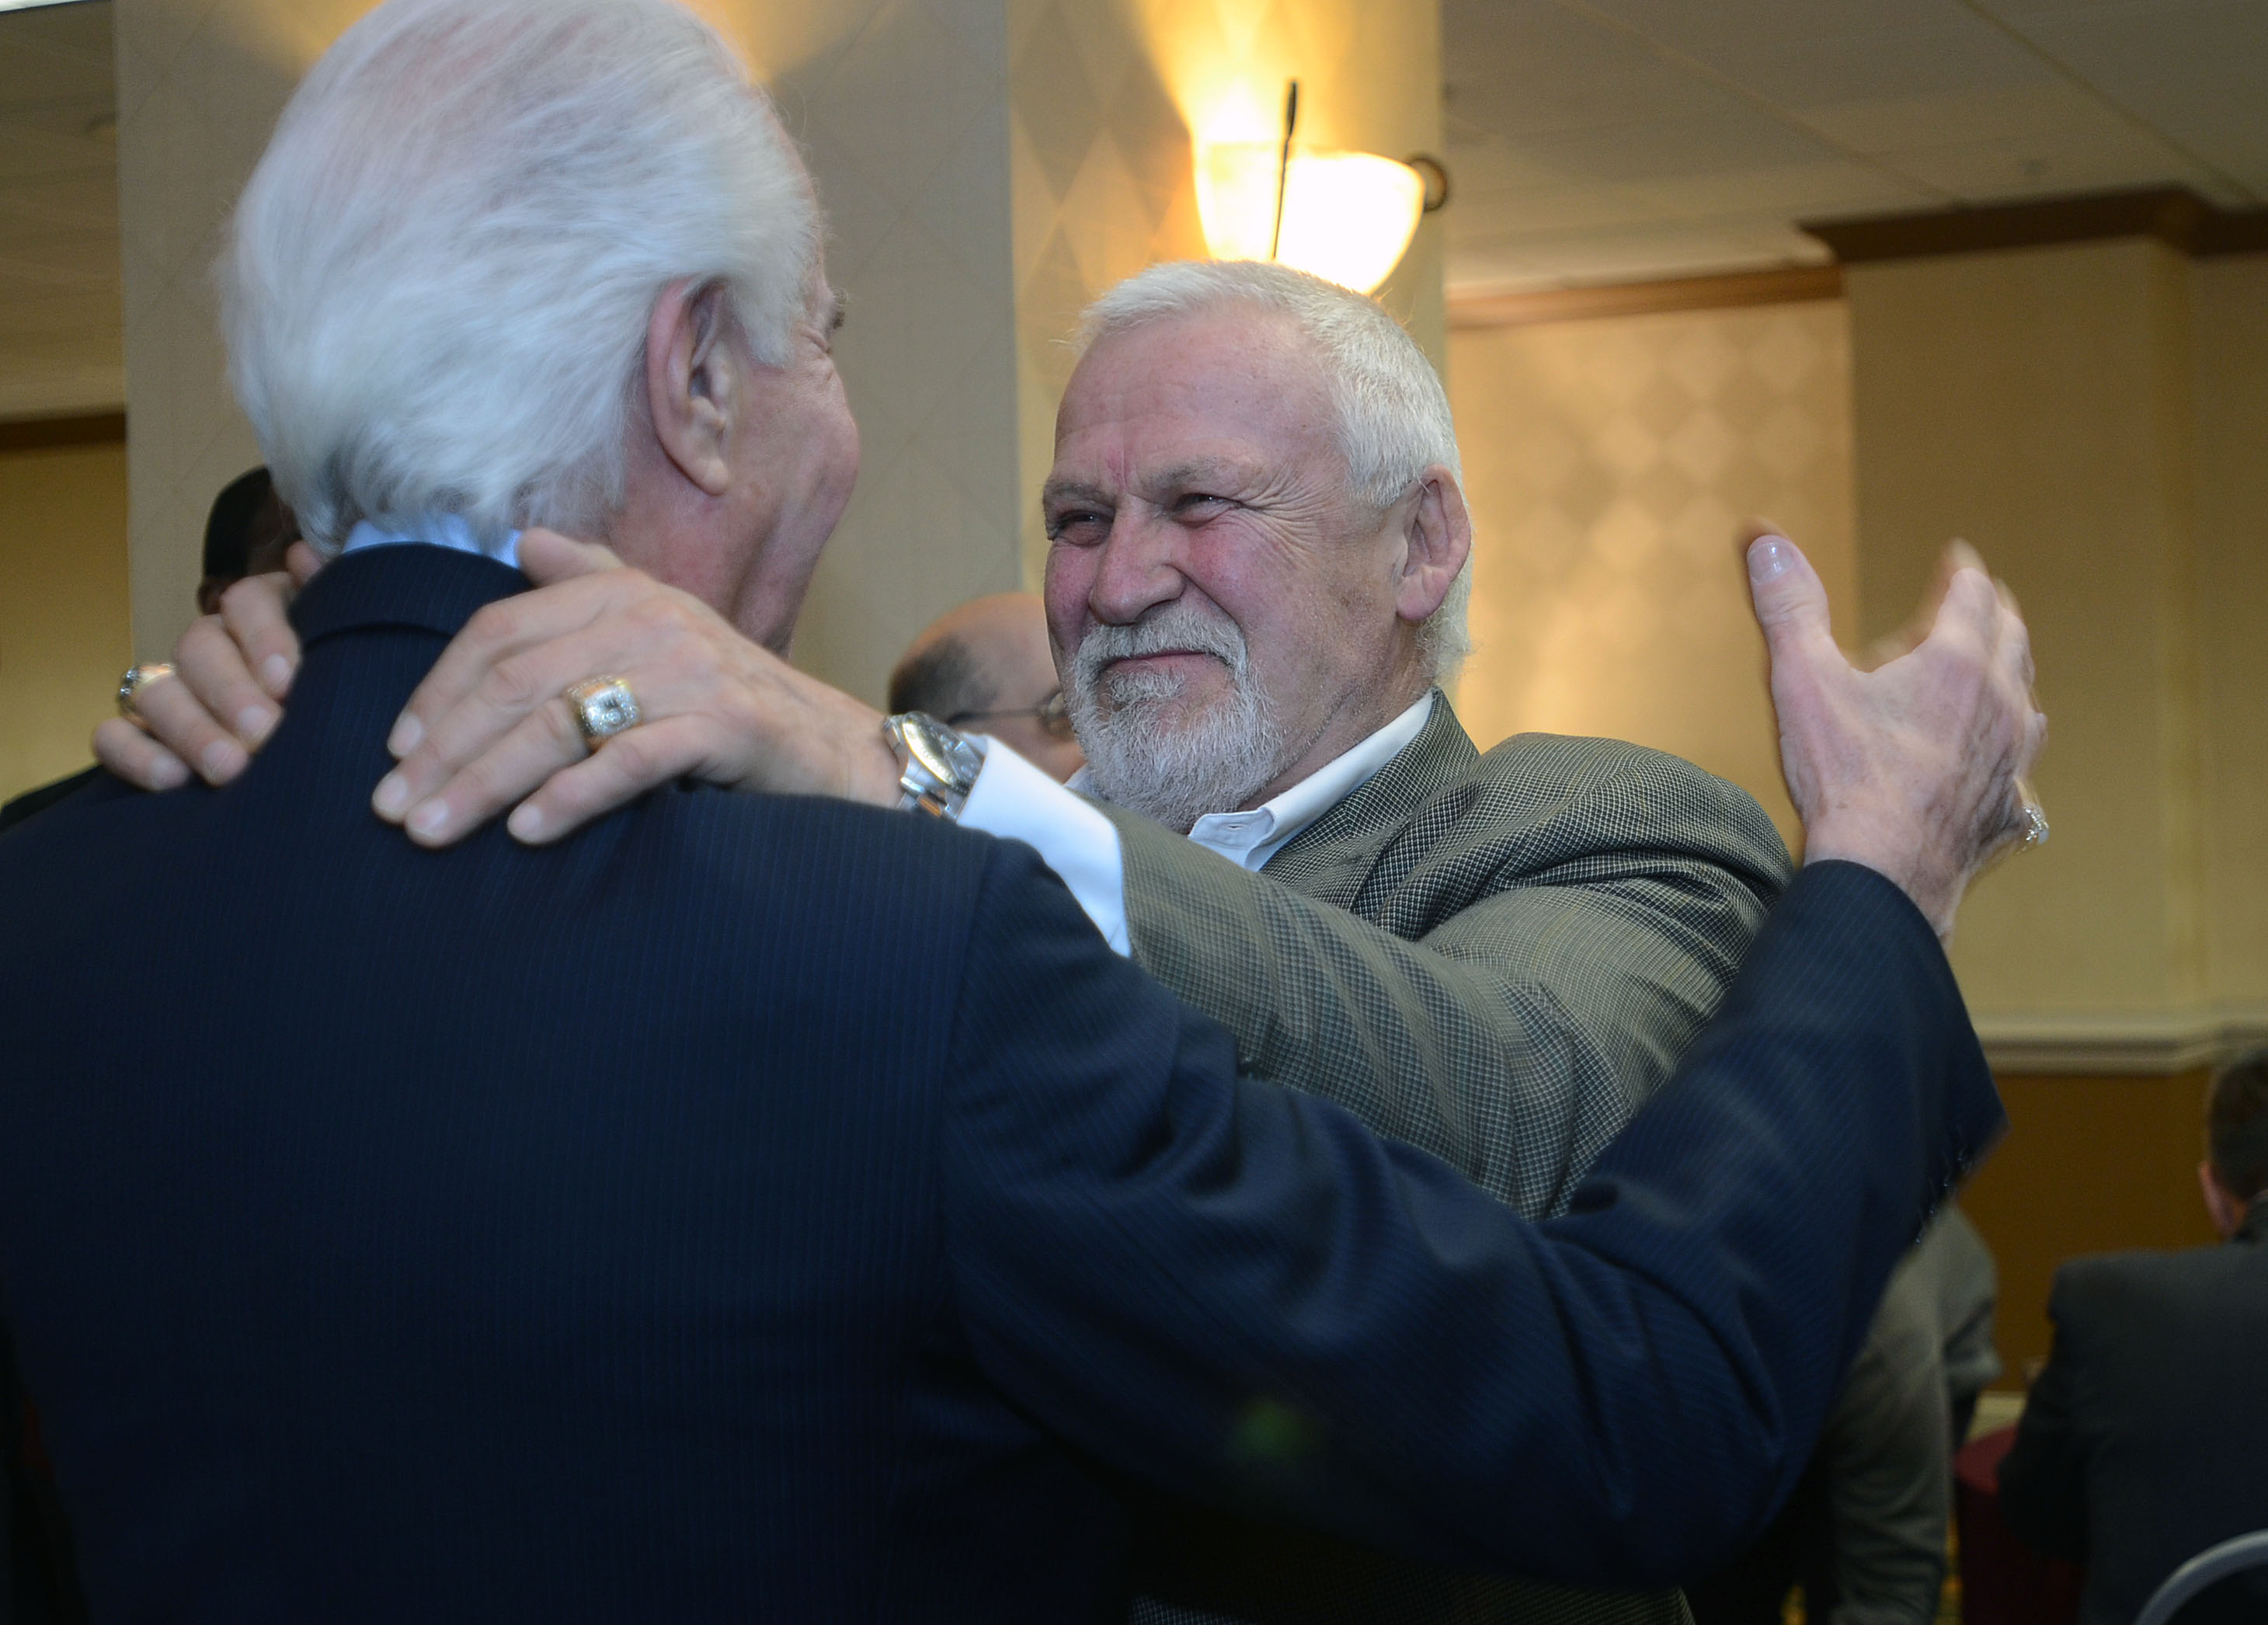 Bernie Parent & Mr. Snider